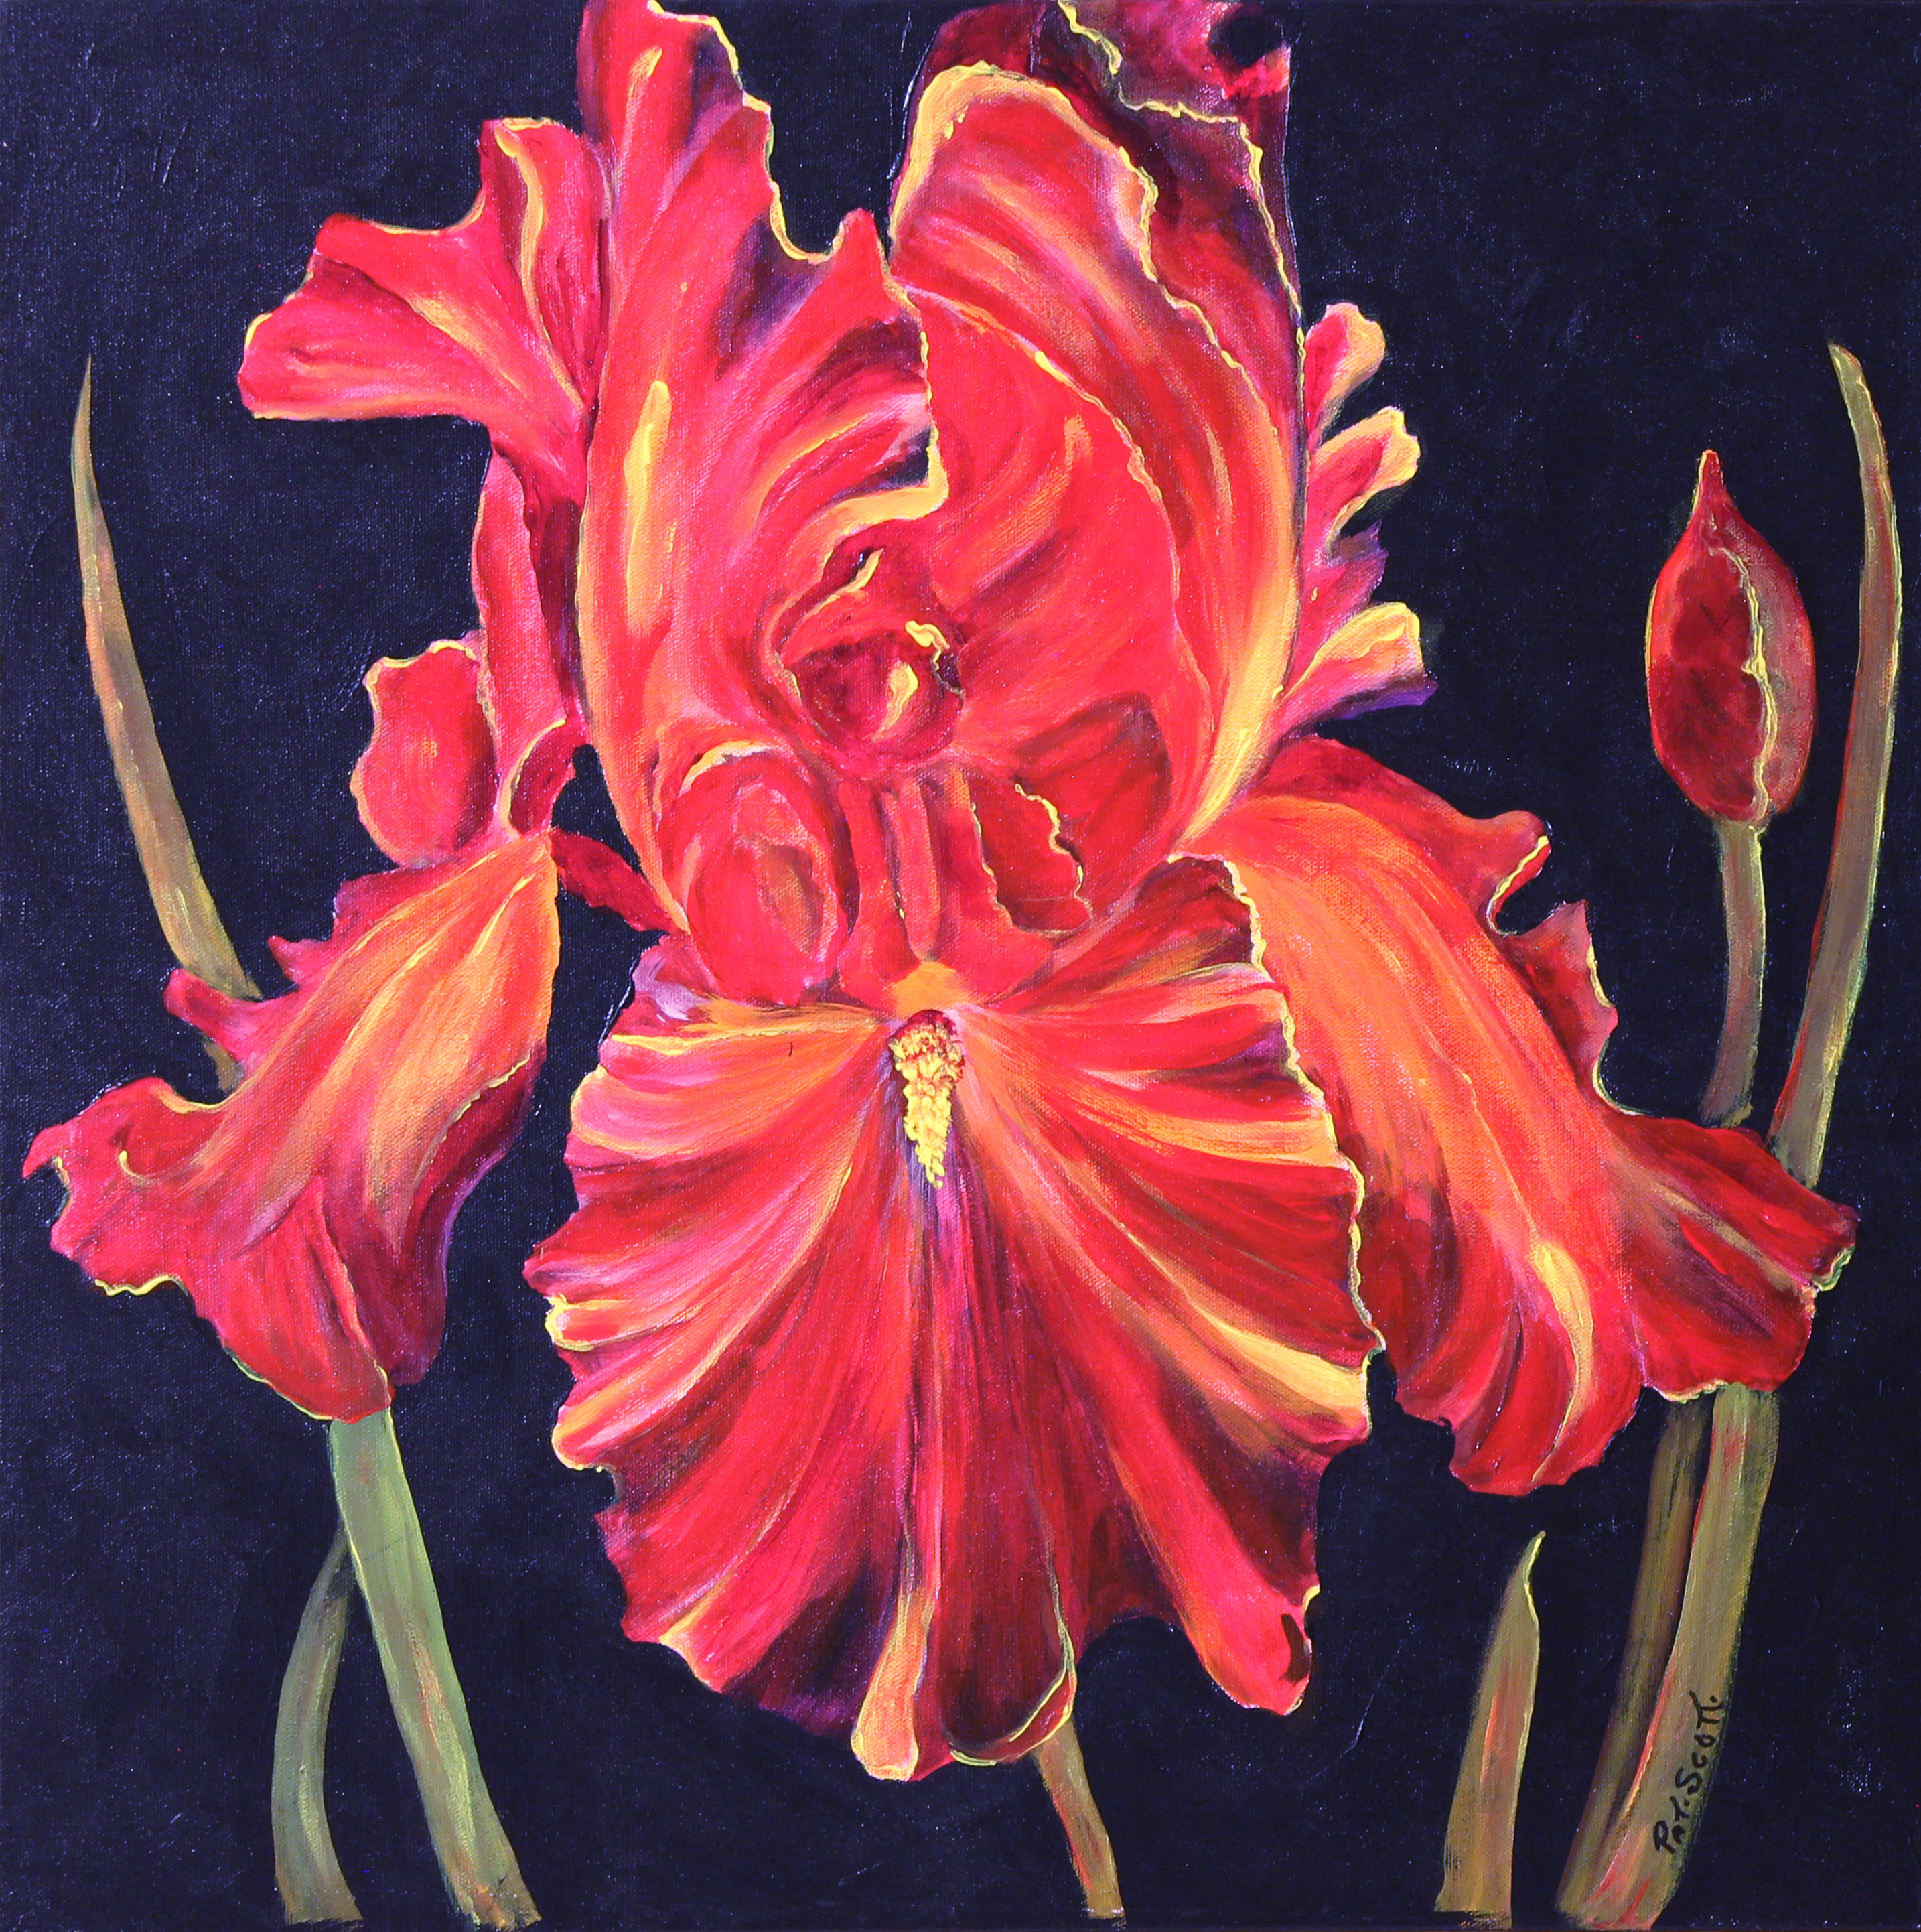 Red iris acrylic painting deep canvas 2 by 2 pat scott gallery red iris acrylic painting deep canvas izmirmasajfo